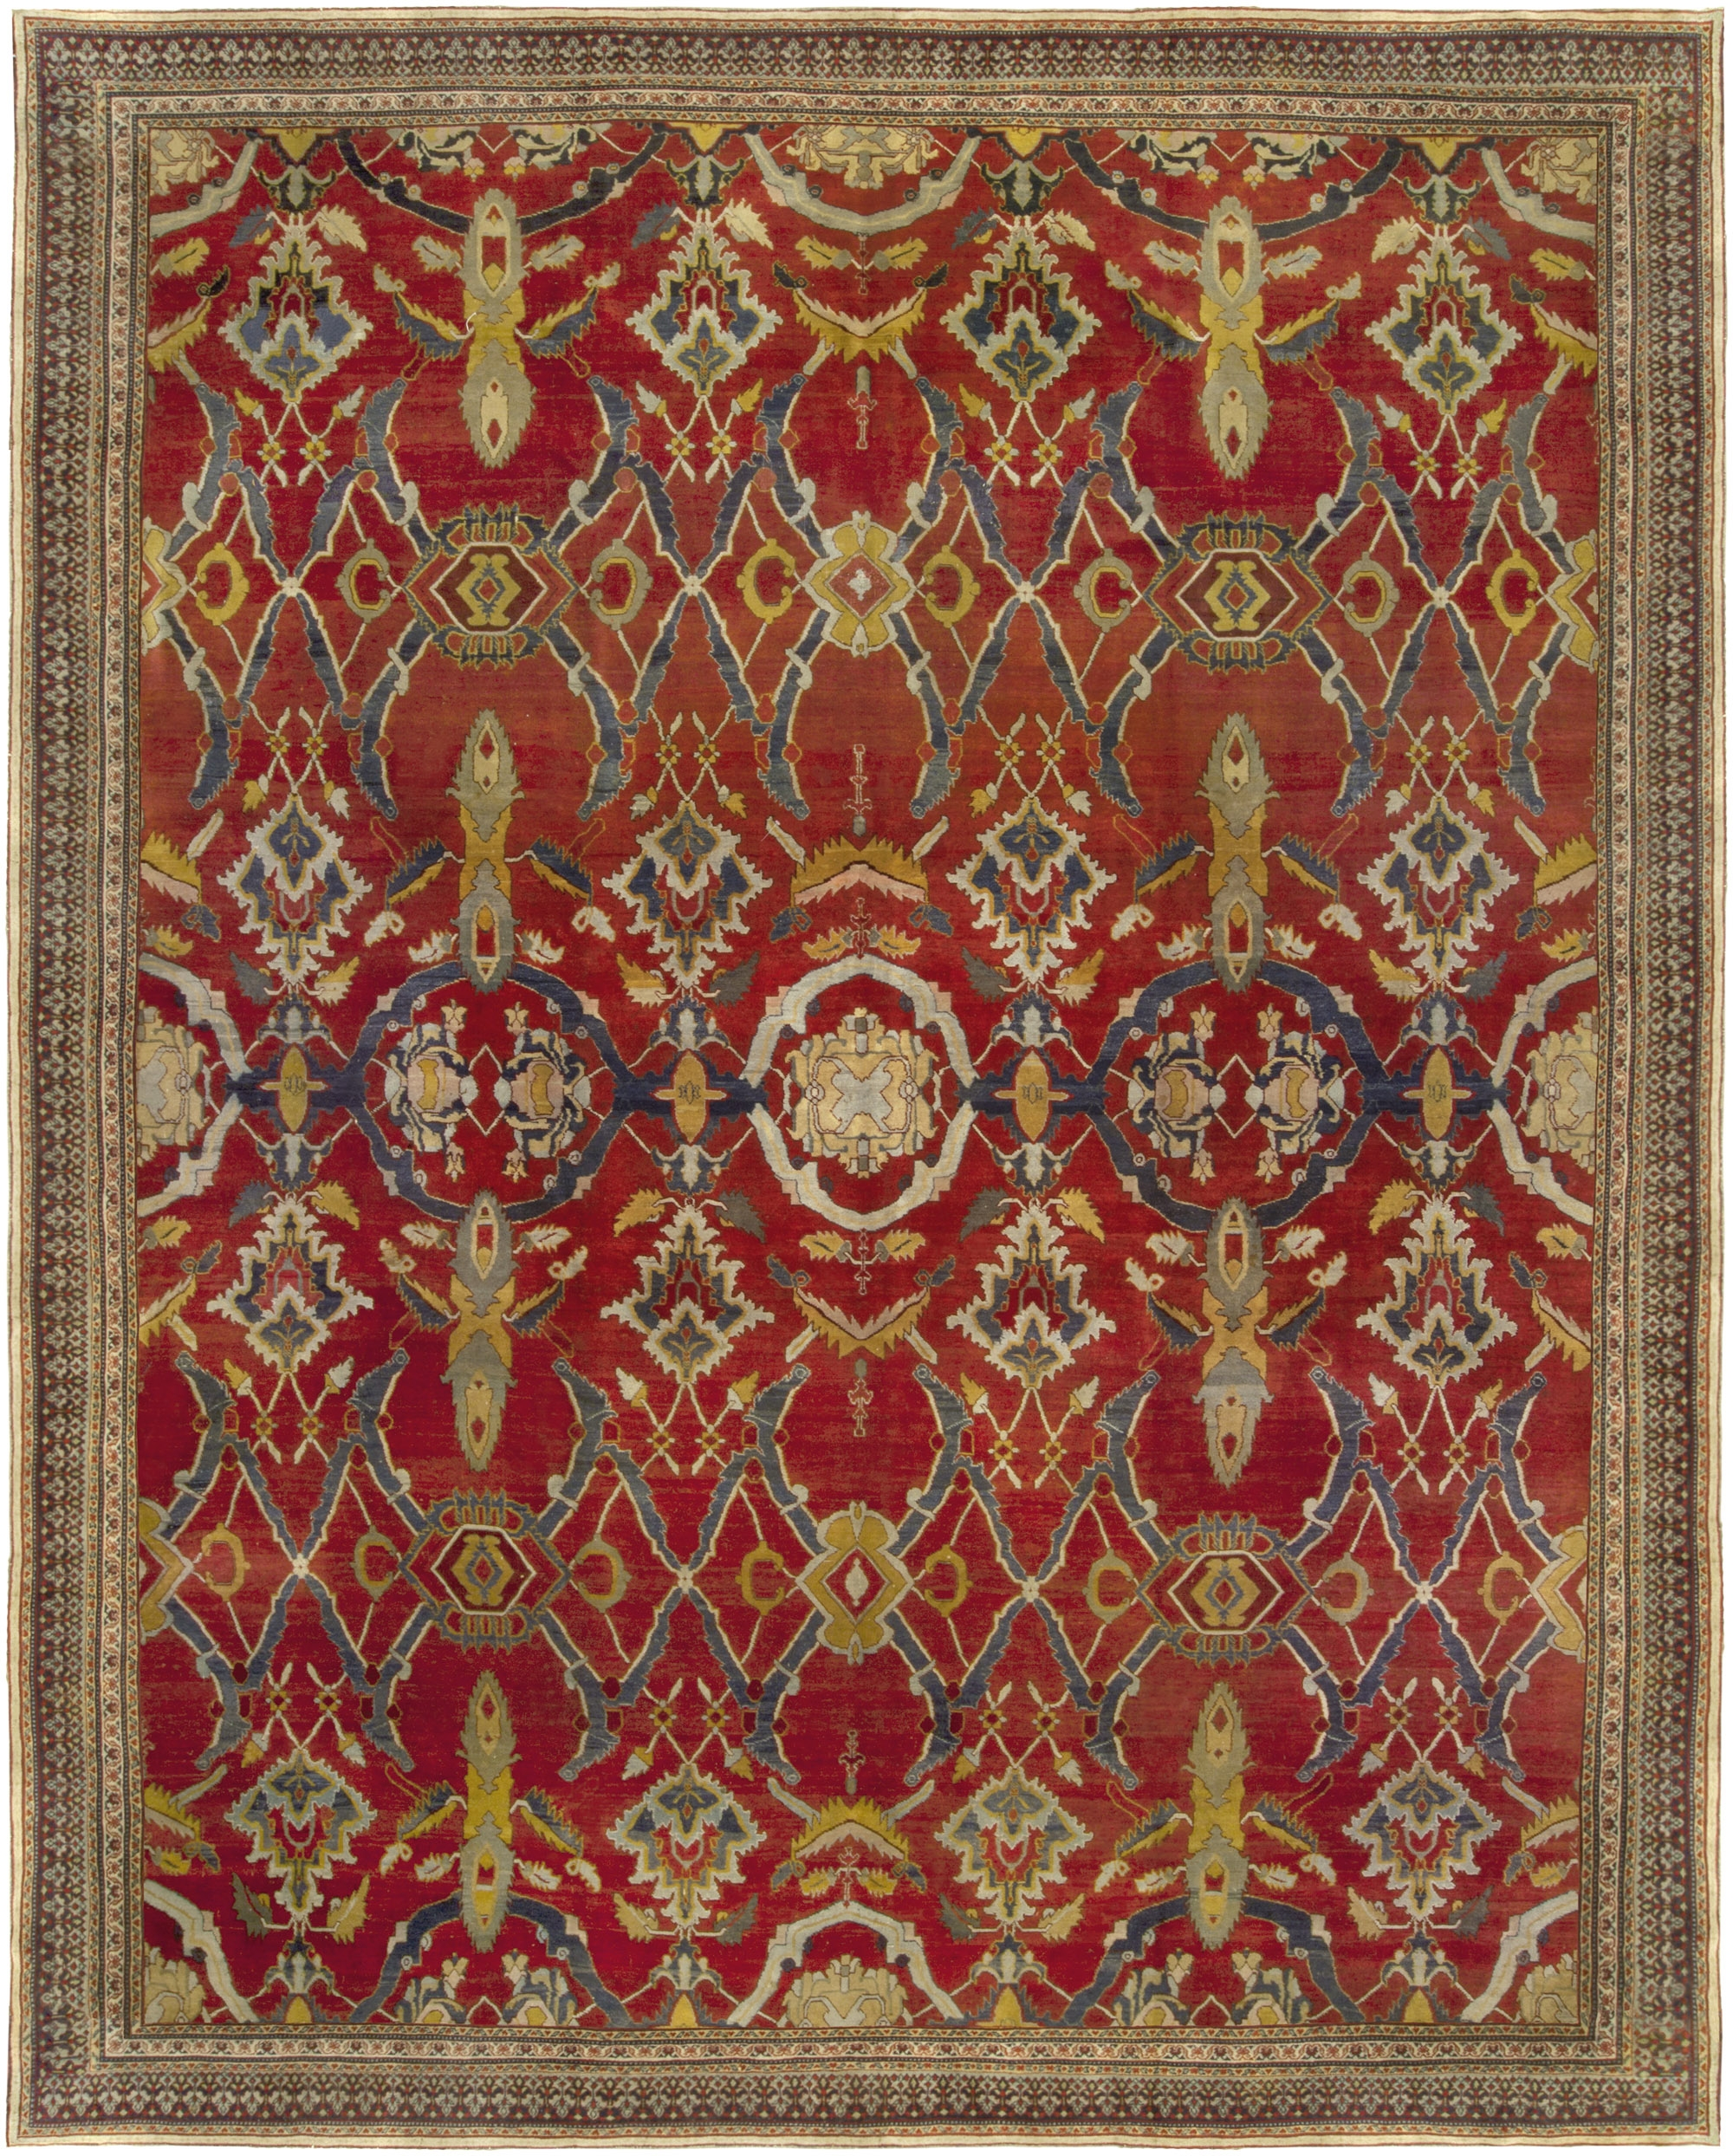 Agra Rugs Antique Indian Doris Leslie Blau New York Intended For Agra Rugs (Image 3 of 15)